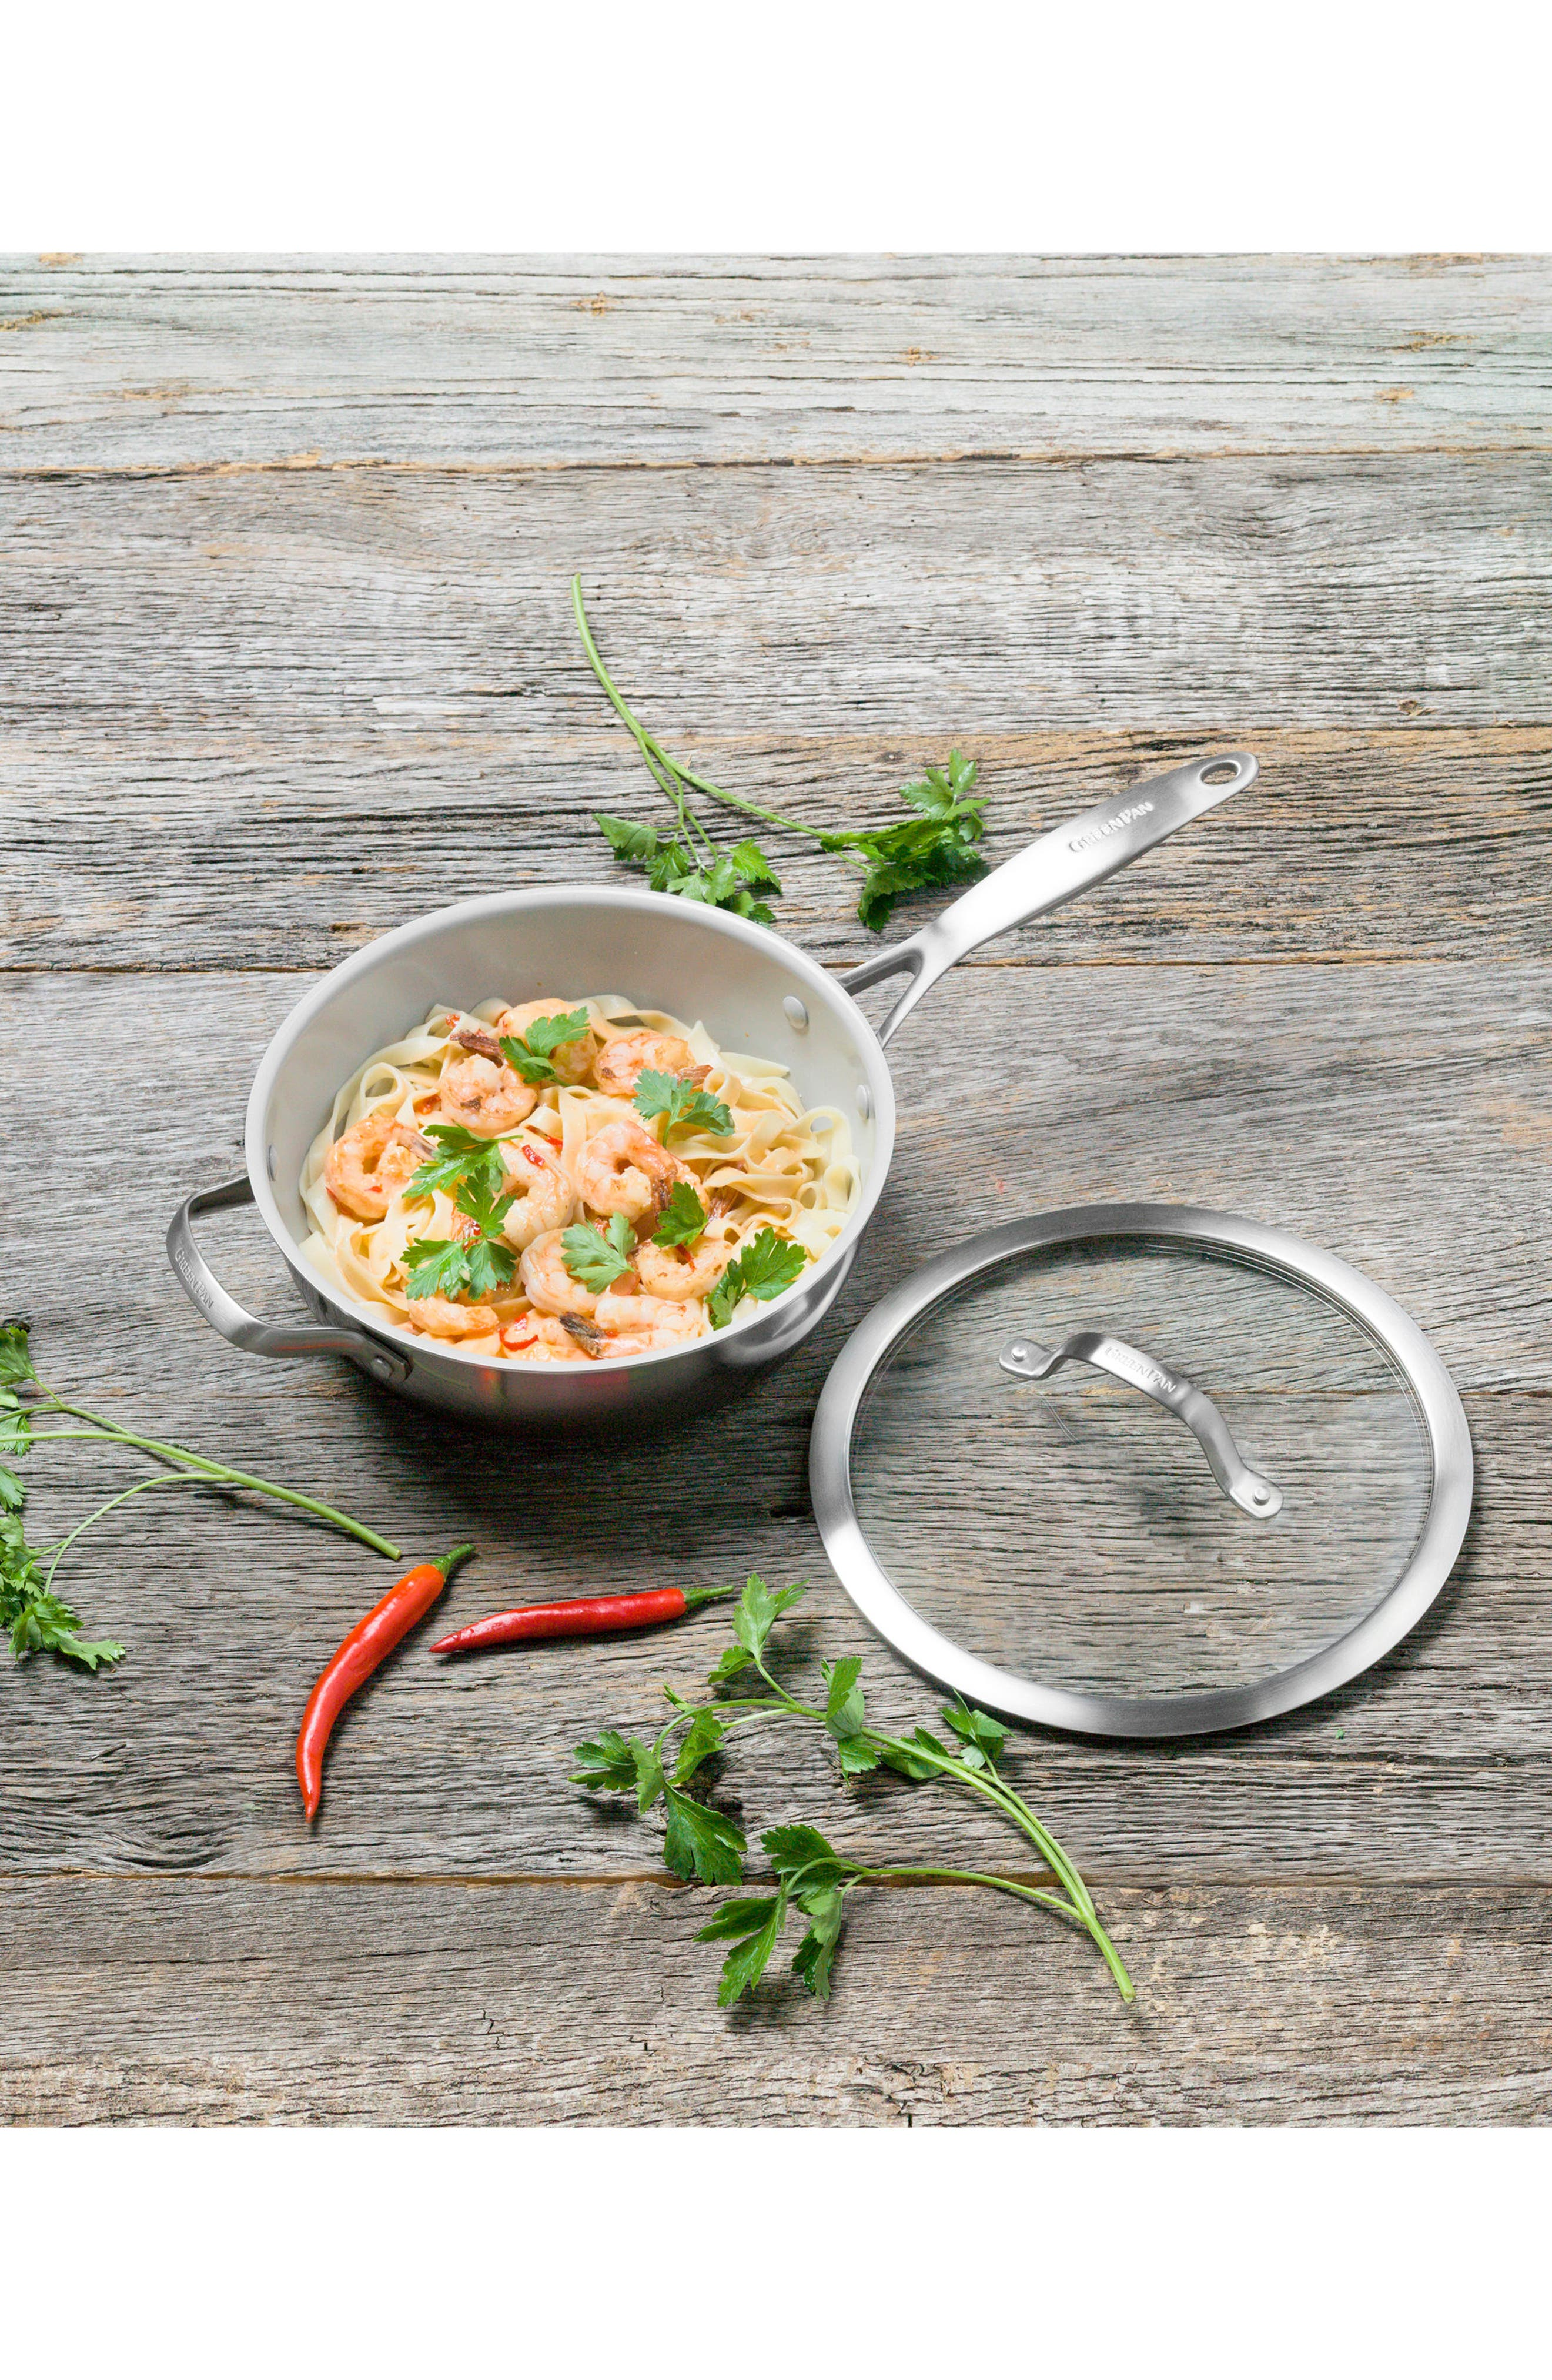 Alternate Image 4  - GreenPan Venice Pro 3 1/2-Quart Multilayer Stainless Steel Ceramic Nonstick Chef's Pan with Glass Lid